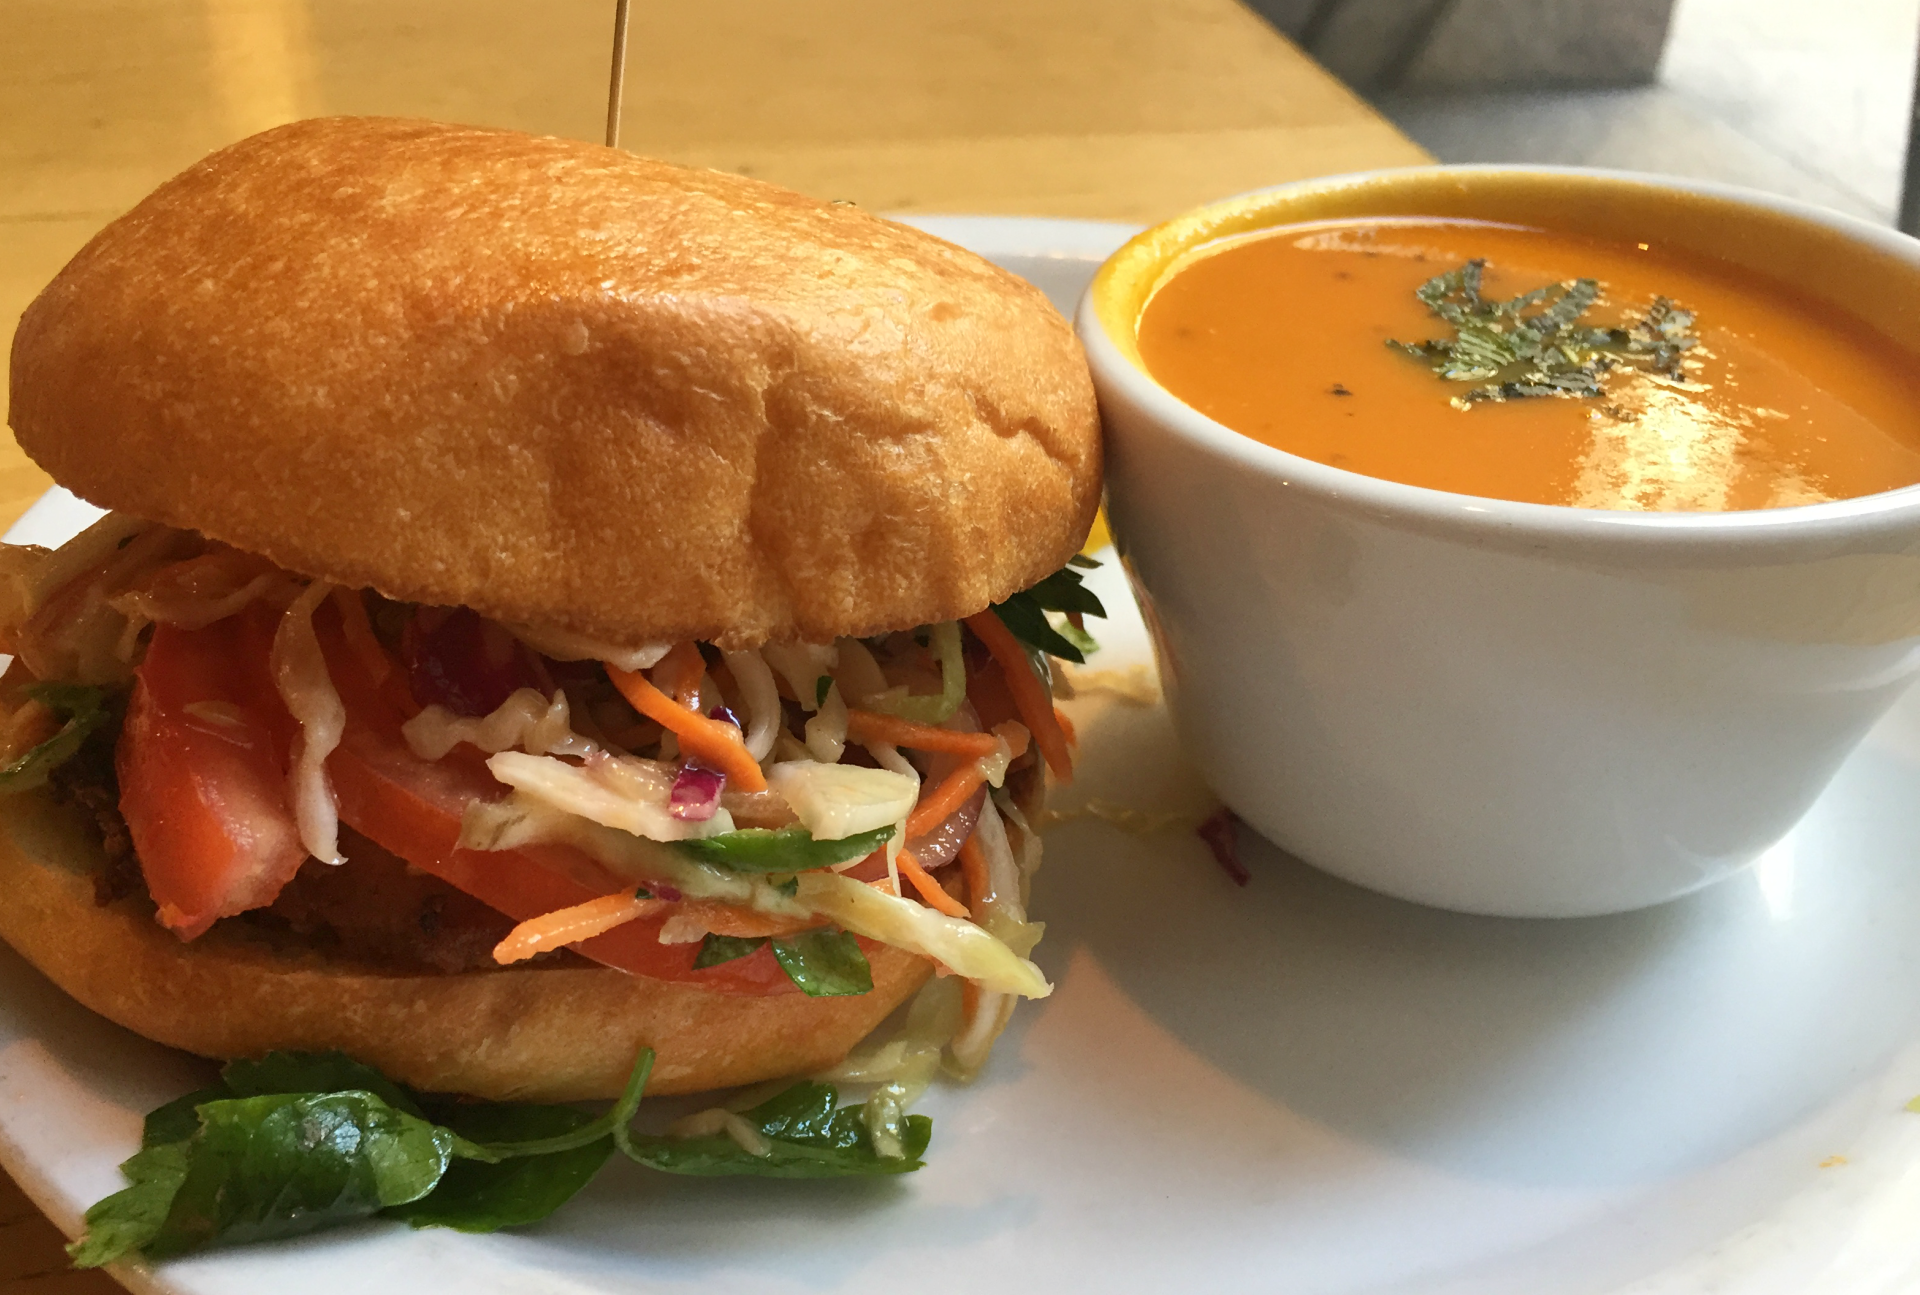 A crispy fried chicken sandwich with the soup of the day from the Plant Cafe Organic.